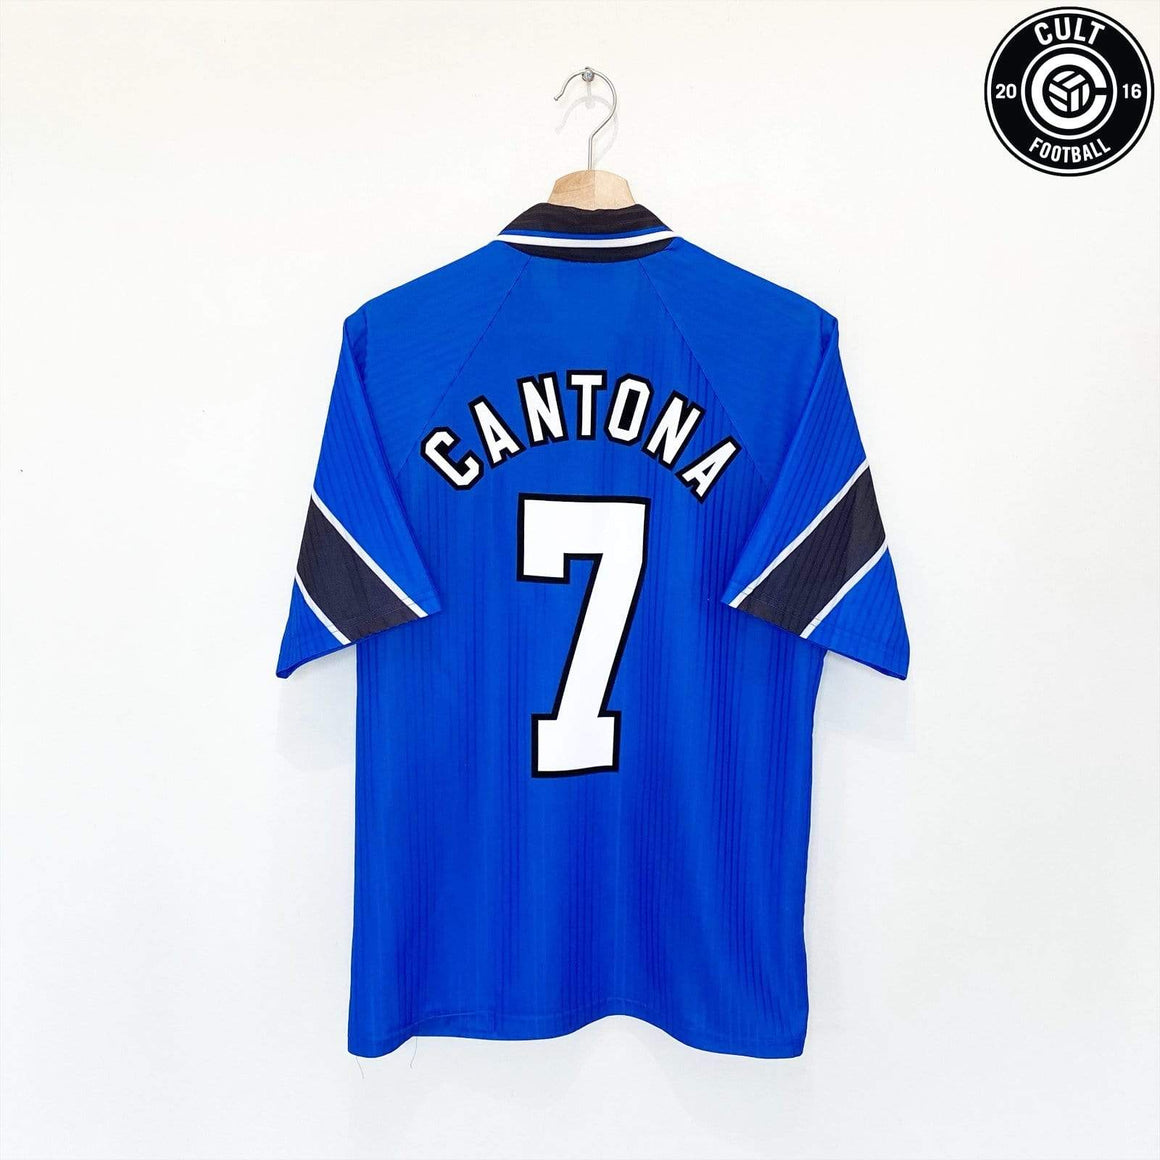 Cult Football 1996/97 CANTONA #7 Manchester United Vintage Umbro Away Football Shirt (M)